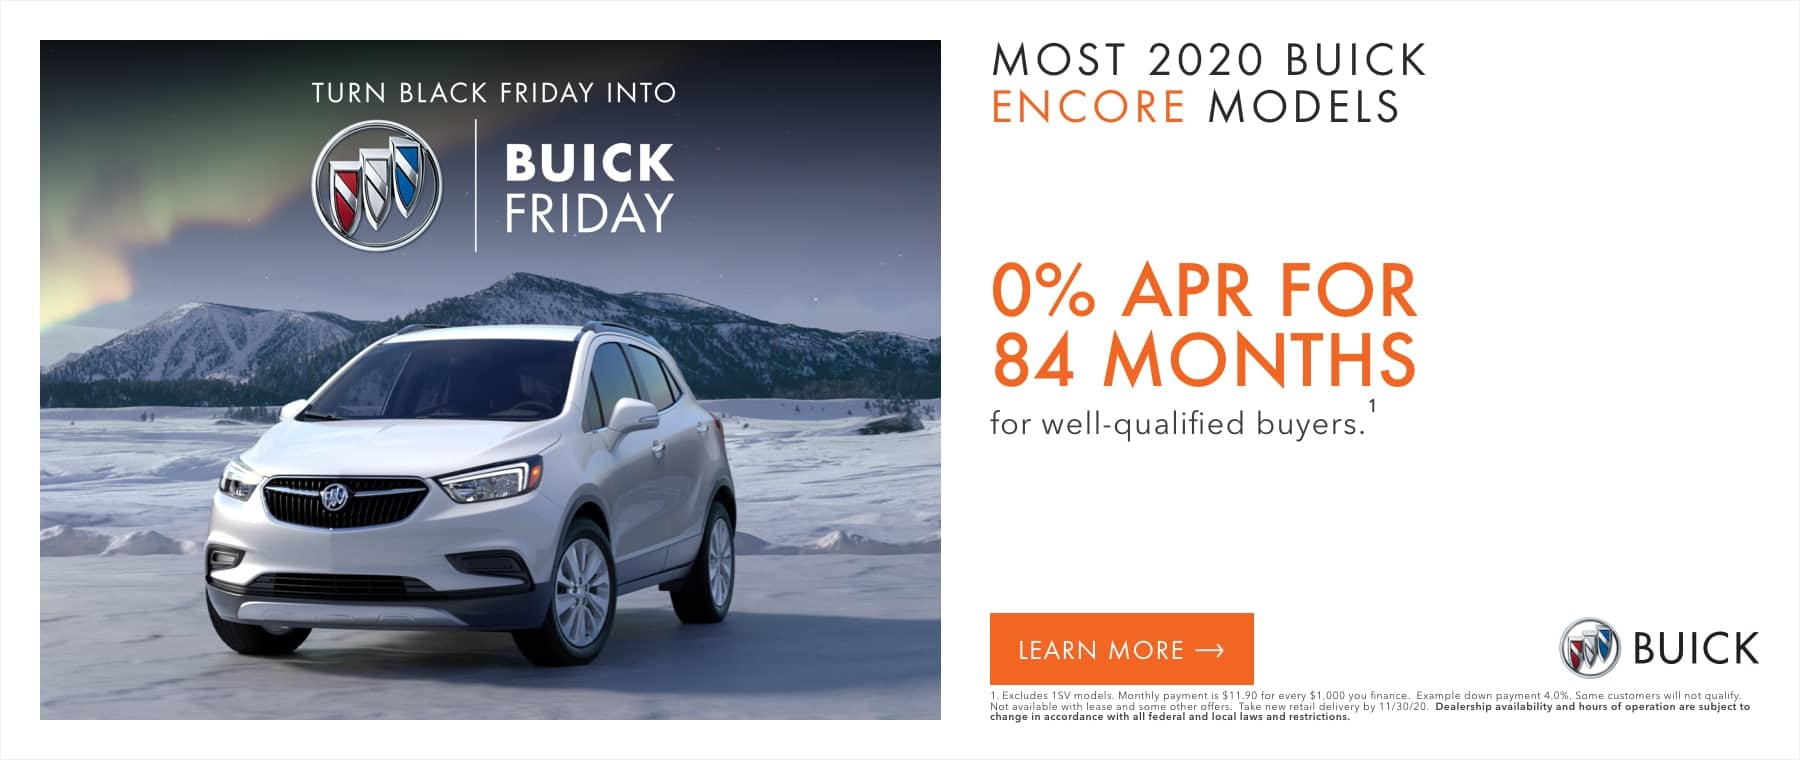 MOST 2020 BUICK ENCORE MODELS - 0% APR for 84 months for well-qualified buyers.1